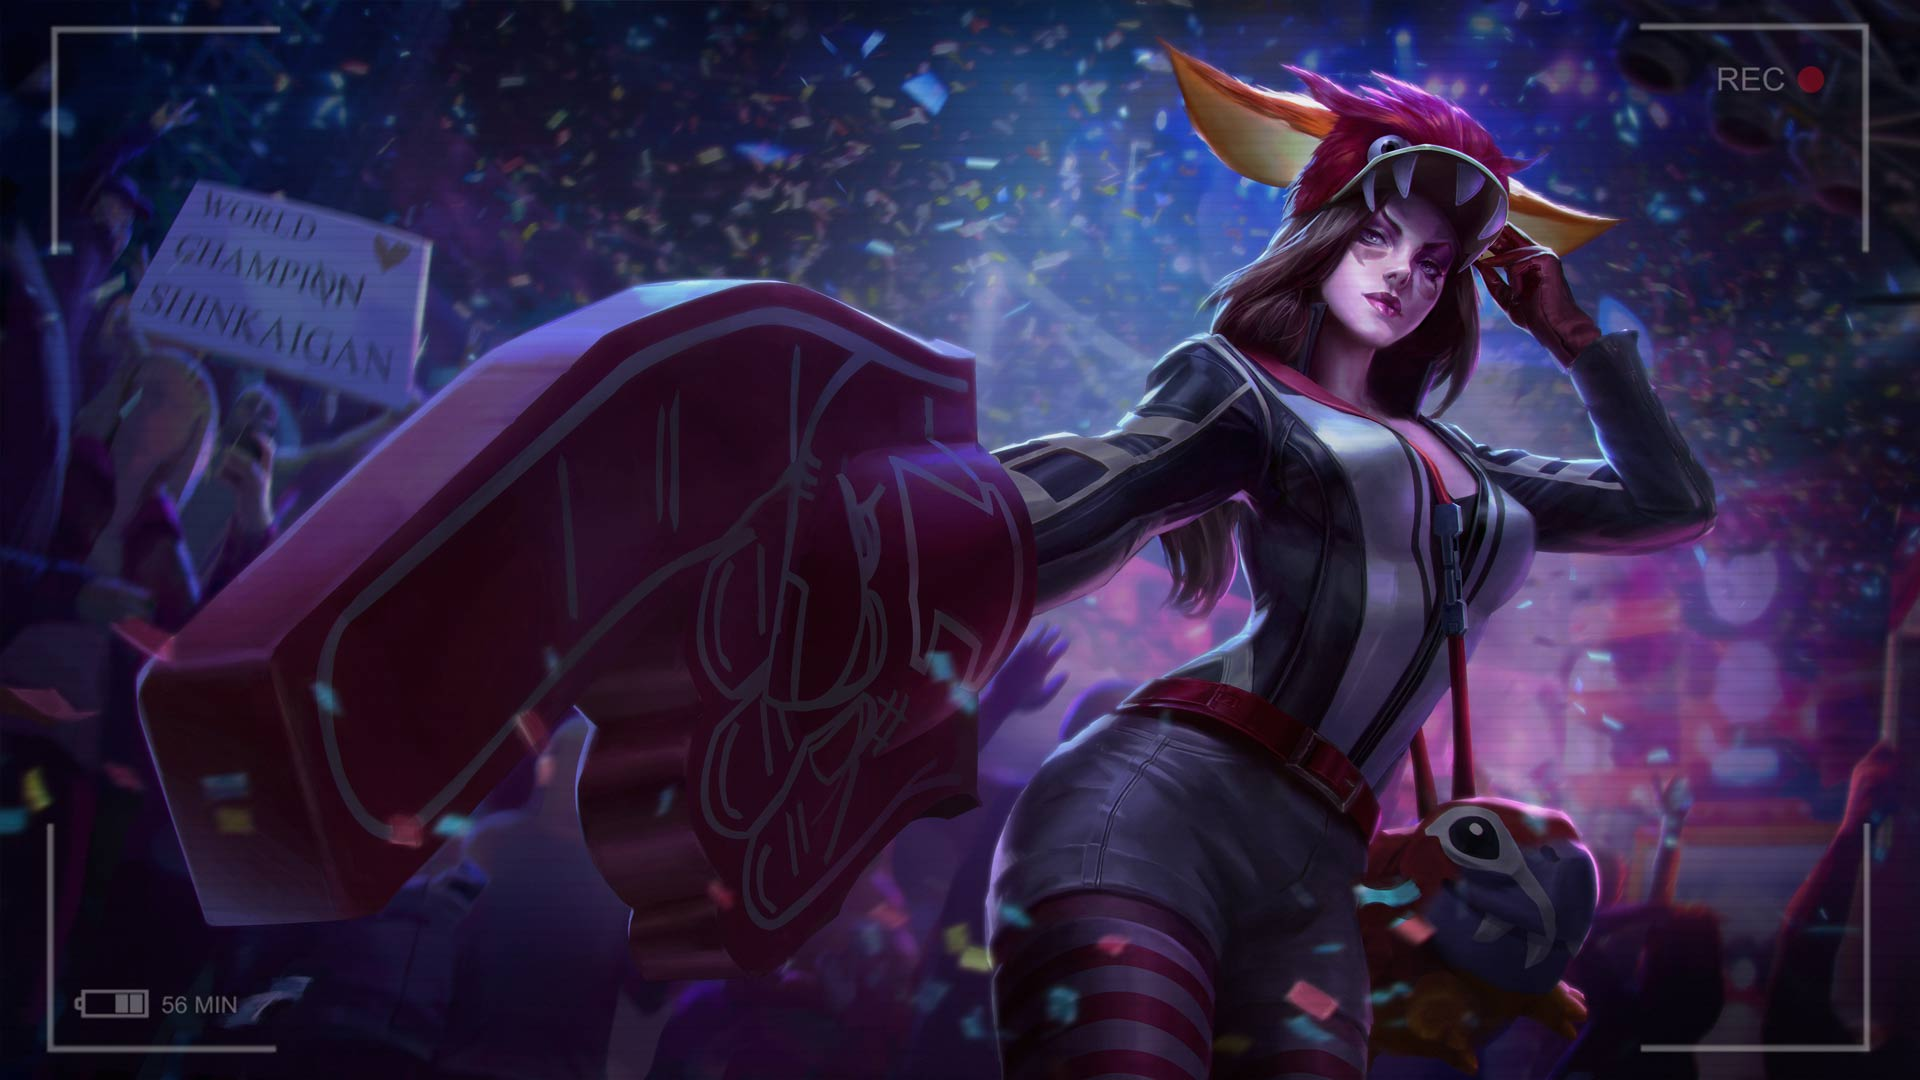 Vainglory Catherine VG Wallpapers HD Desktop and Mobile 1920x1080